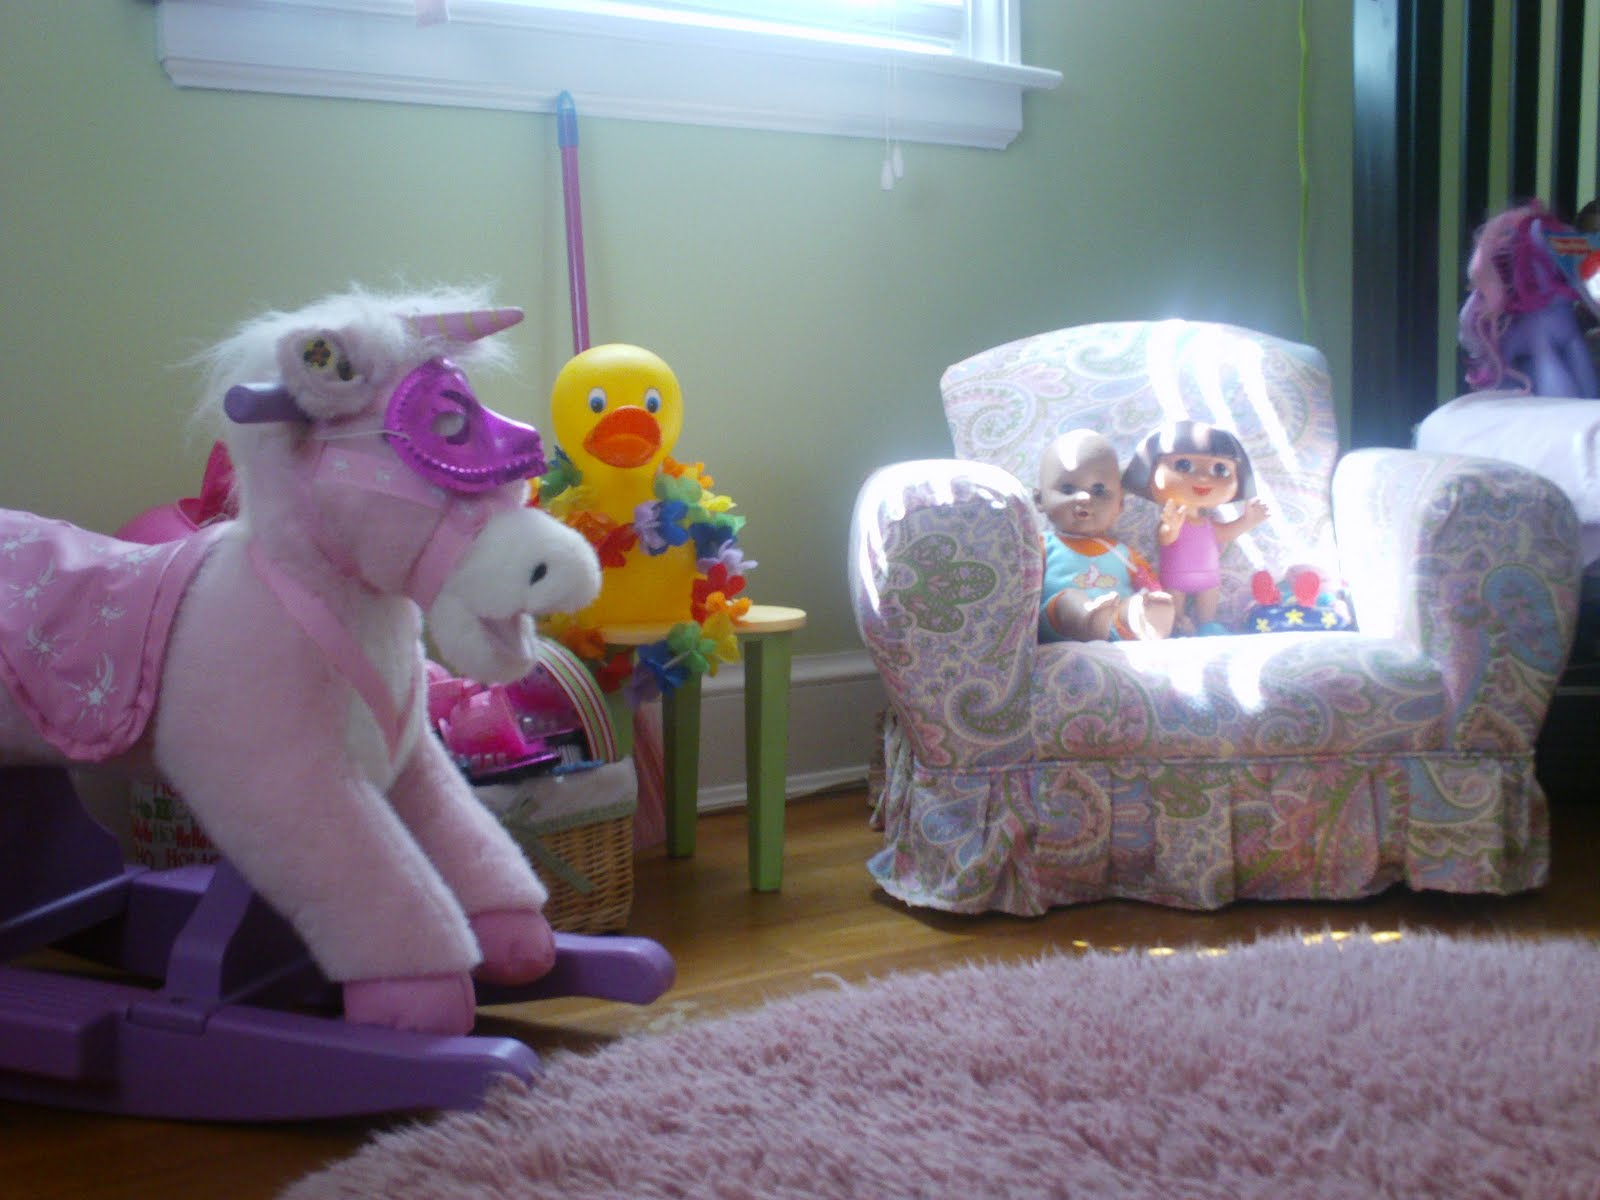 Delicieux Balloon Shades From Pottery Barn Kids (pink Gingham Print). Paisley Arm  Chair/rocker Comes From Home Goods ...